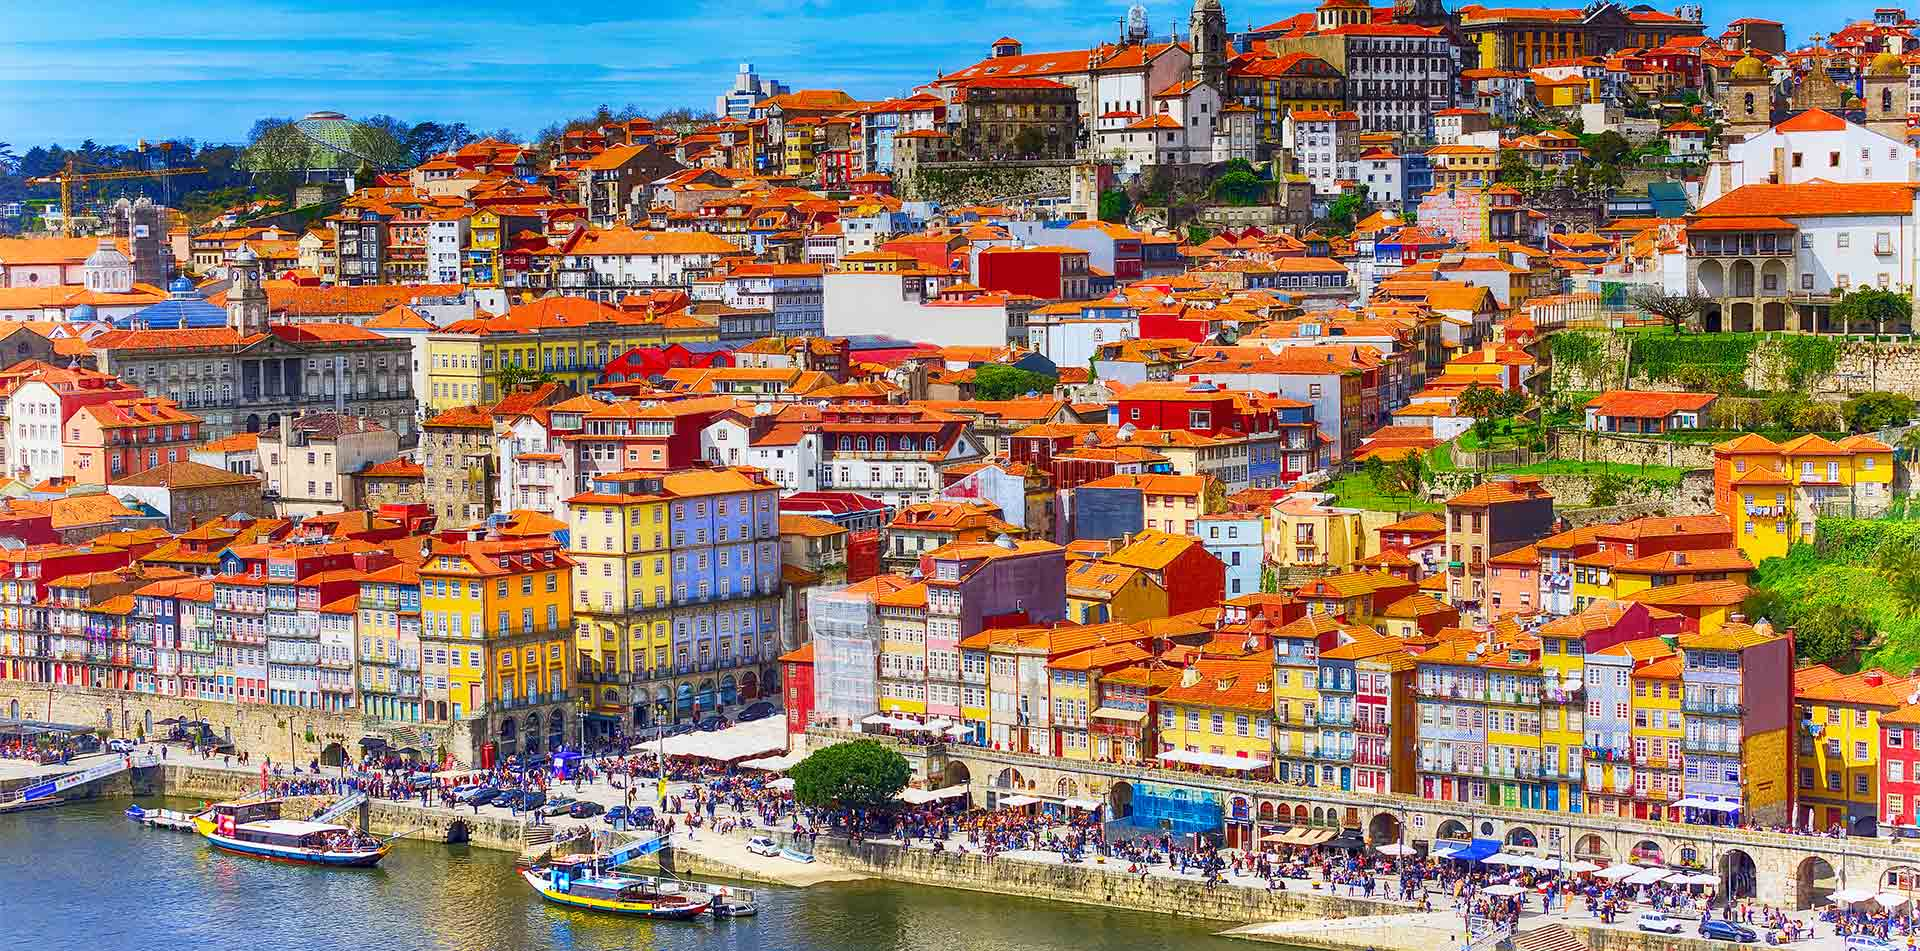 Europe Portugal Douro River Ribeira aerial view of promenade with colorful houses and boats - luxury vacation destinations